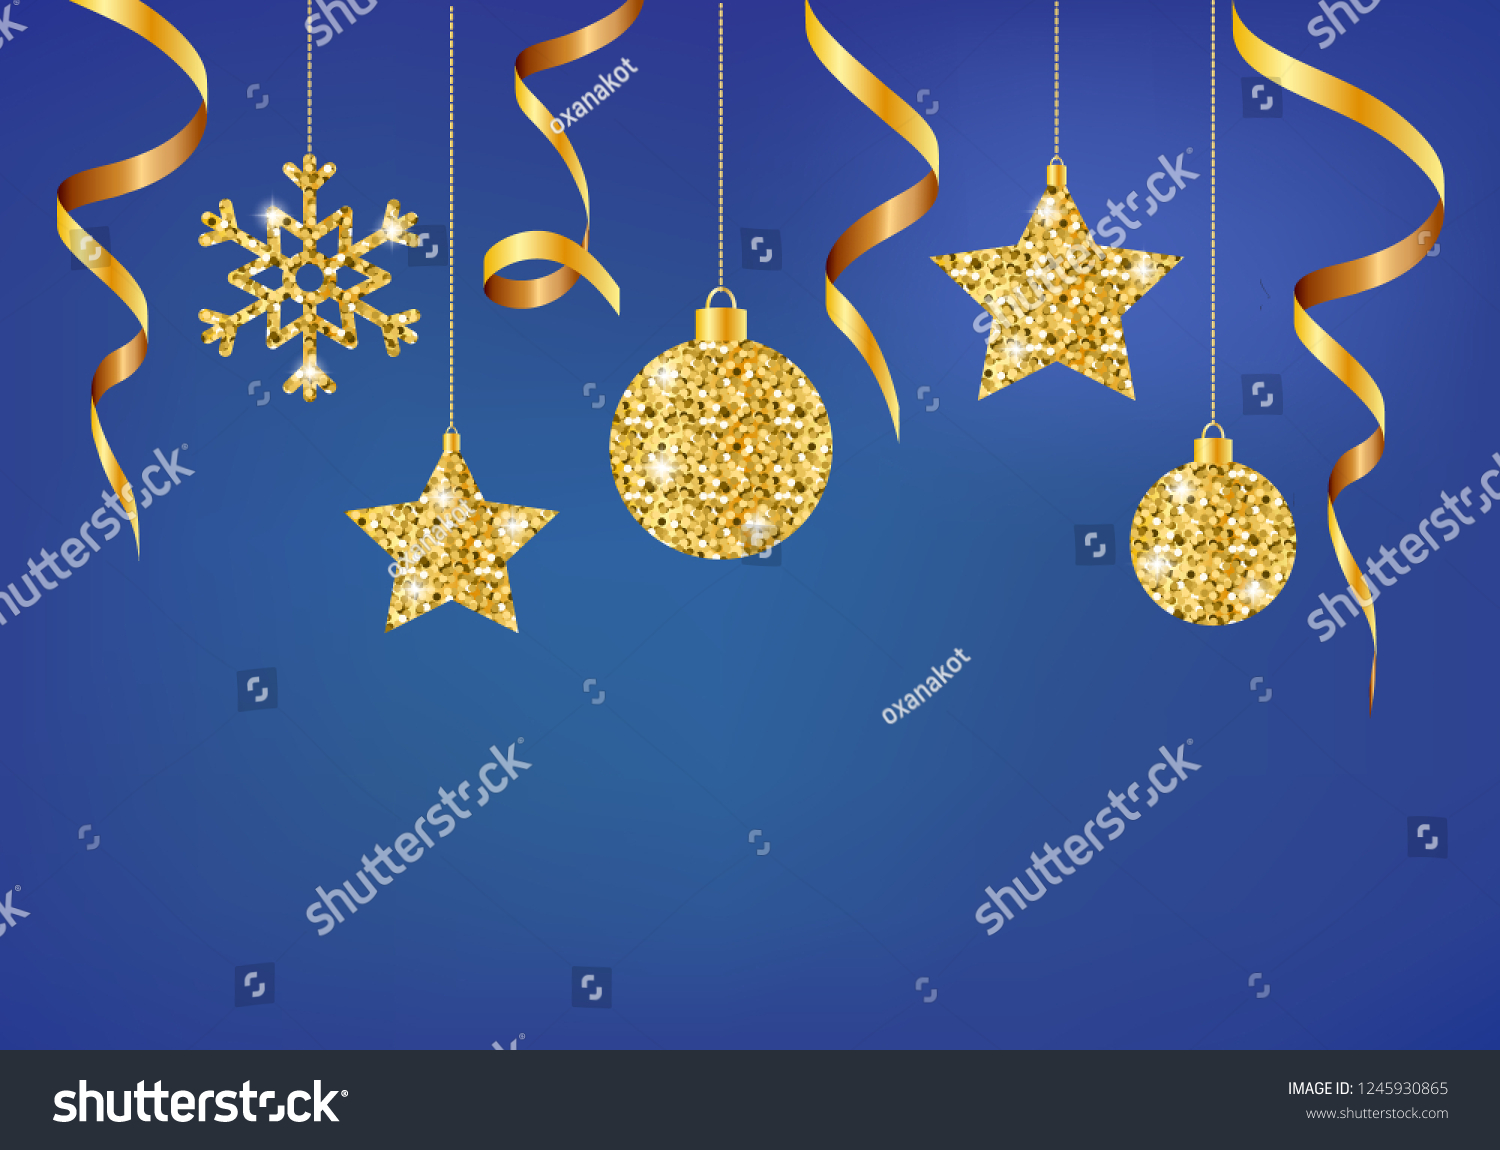 new year background for the site social networks blog or video channel with christmas